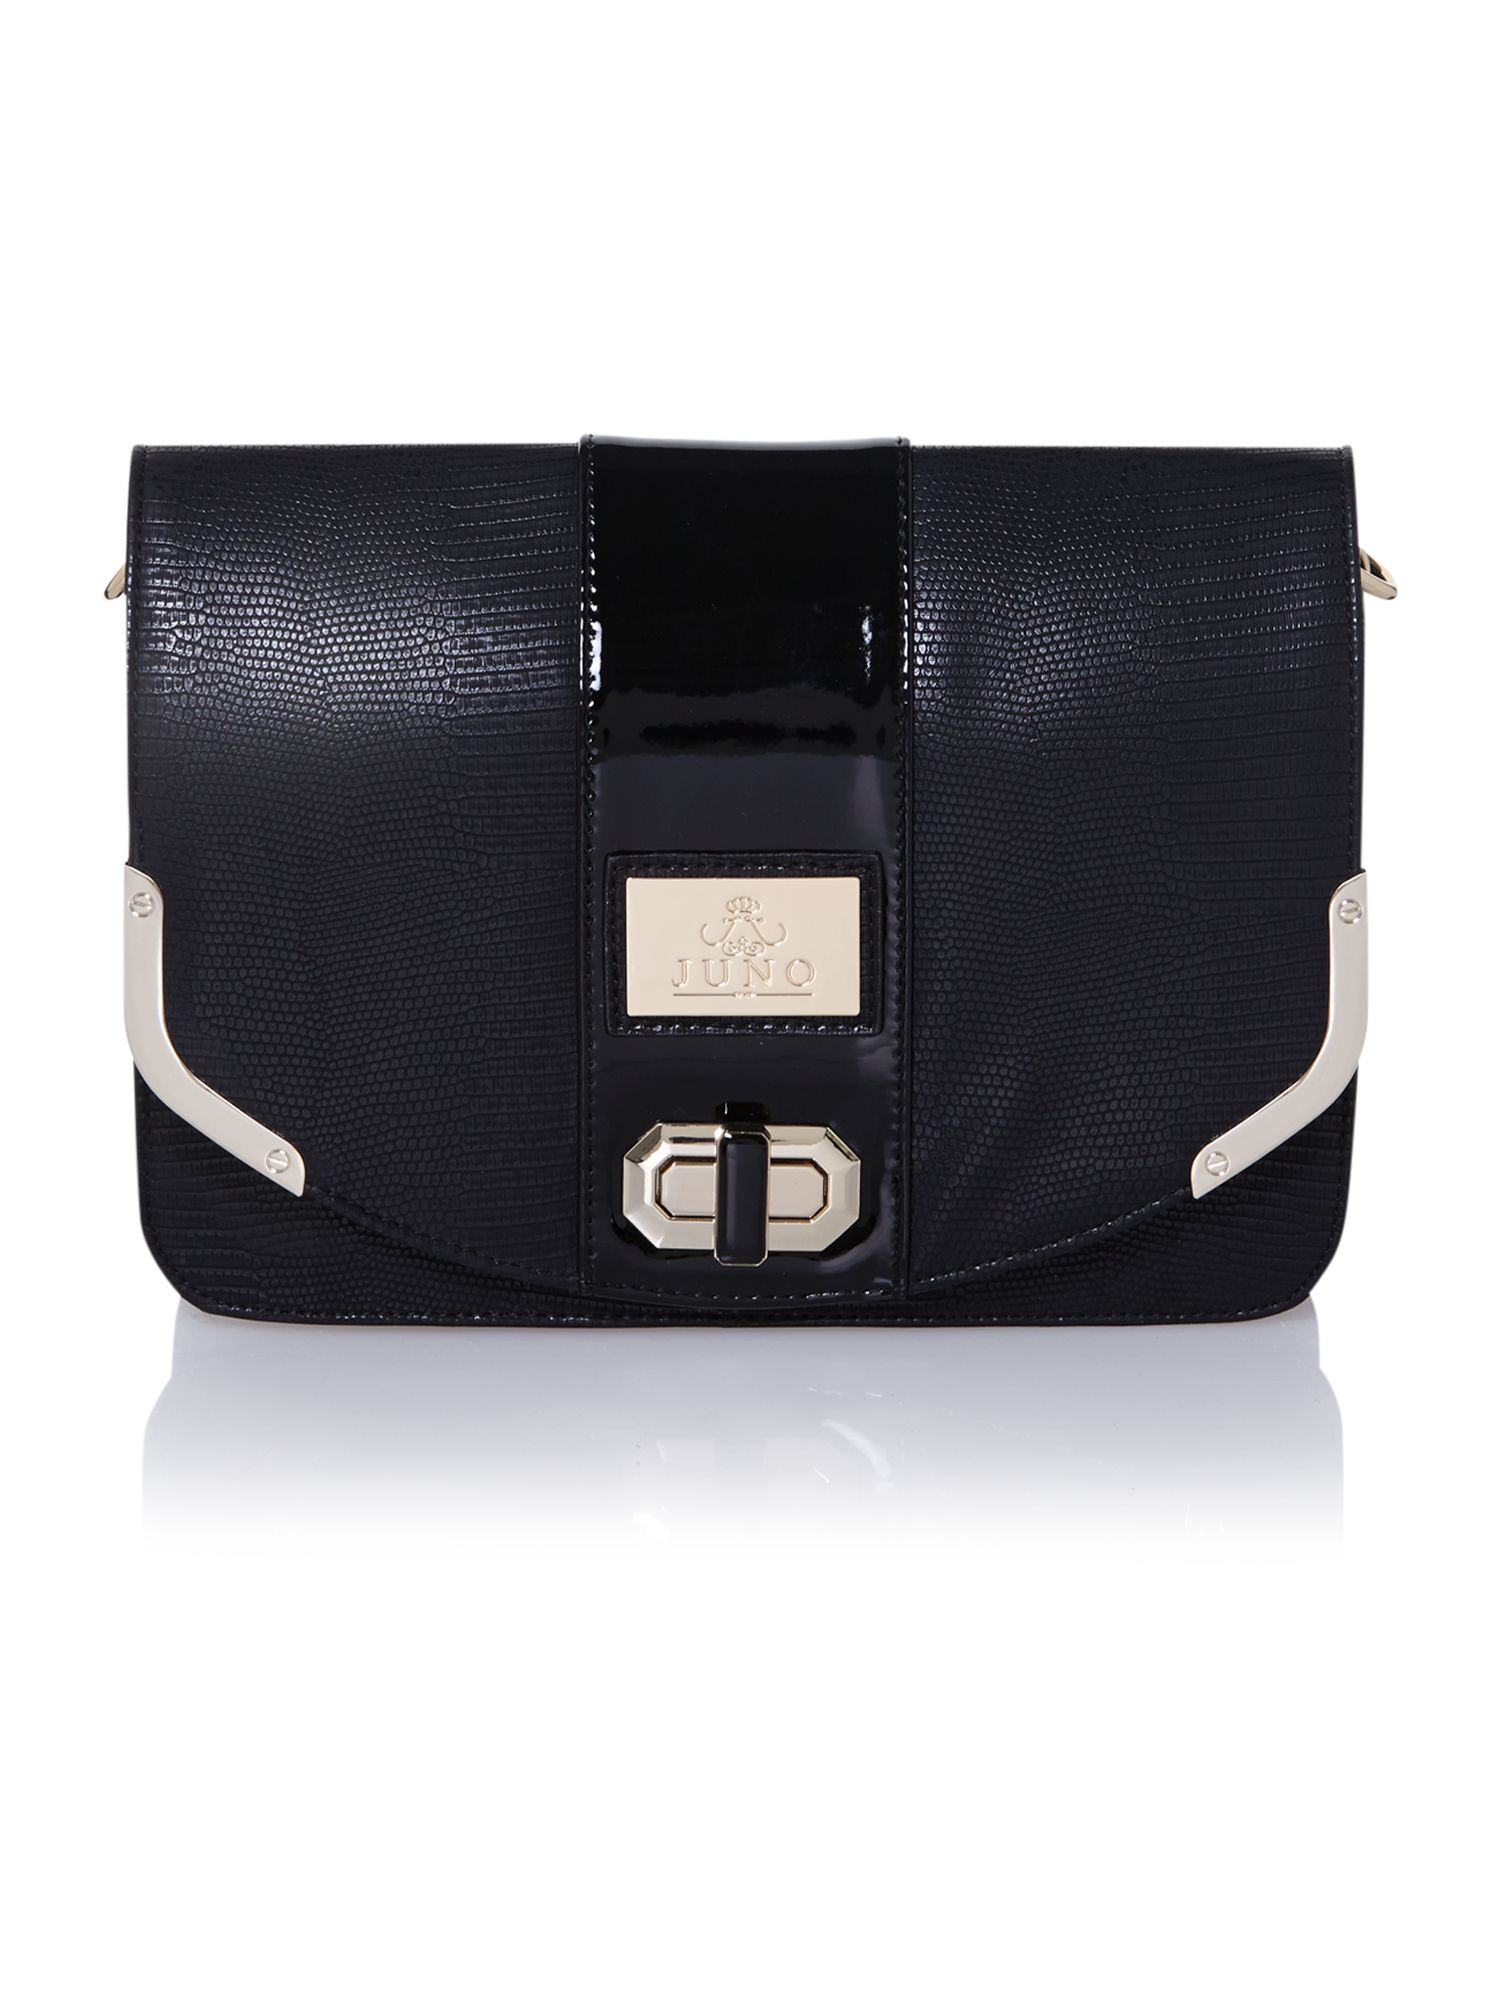 Black medium flapover shoulder bag